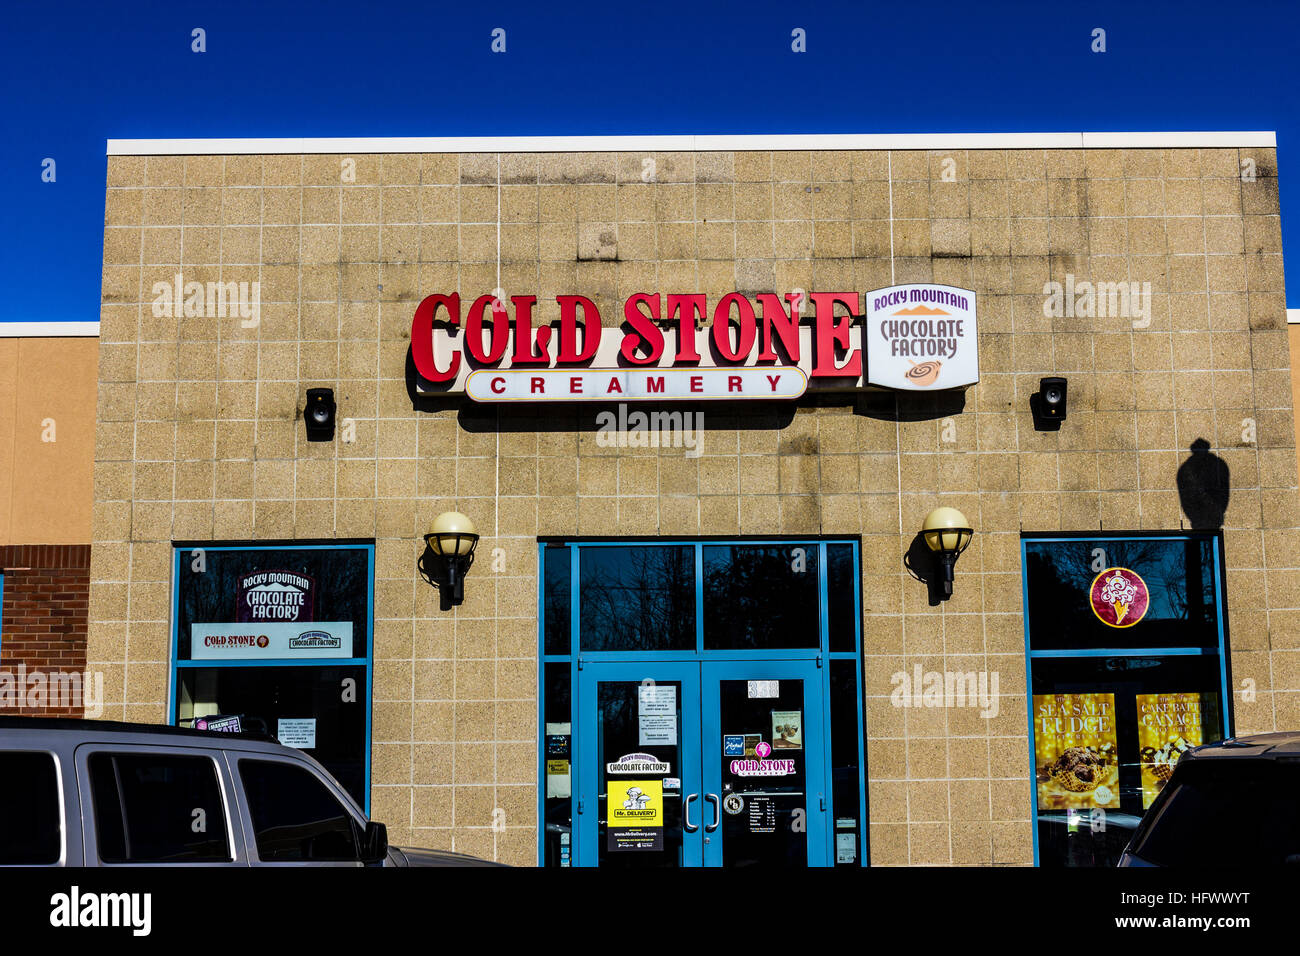 Lafayette - Circa December 2016: Cold Stone Creamery Ice Cream Parlor Location. Cold Stone is owned and operated Stock Photo